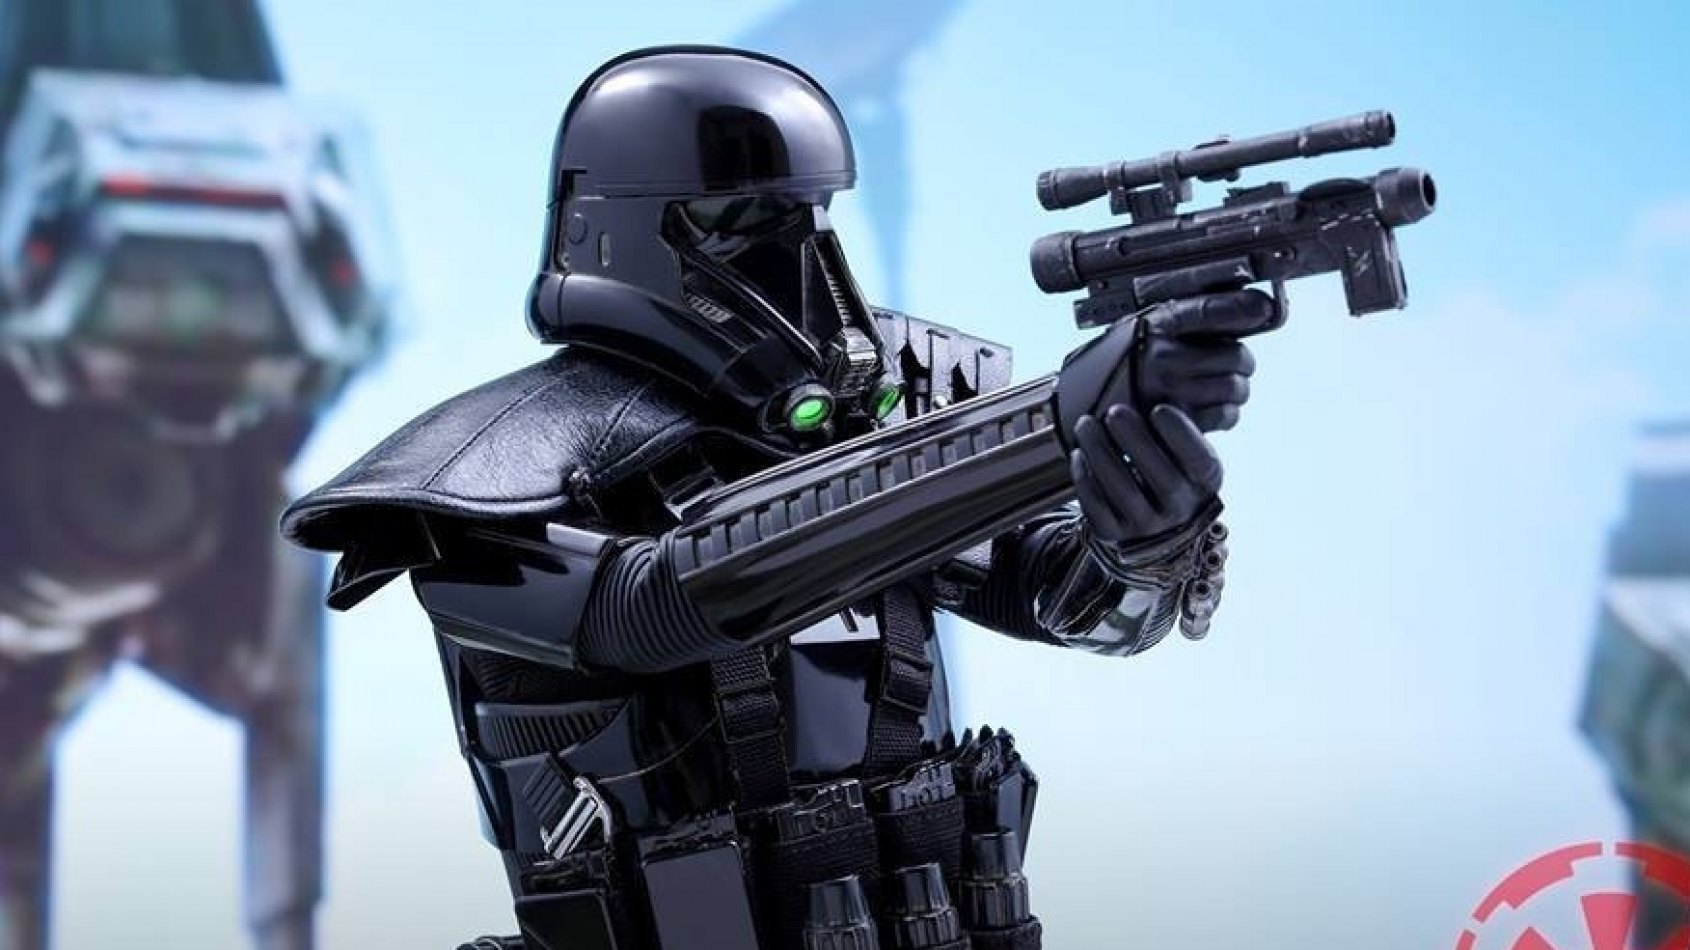 Hot Toys dévoile son Deathtrooper !